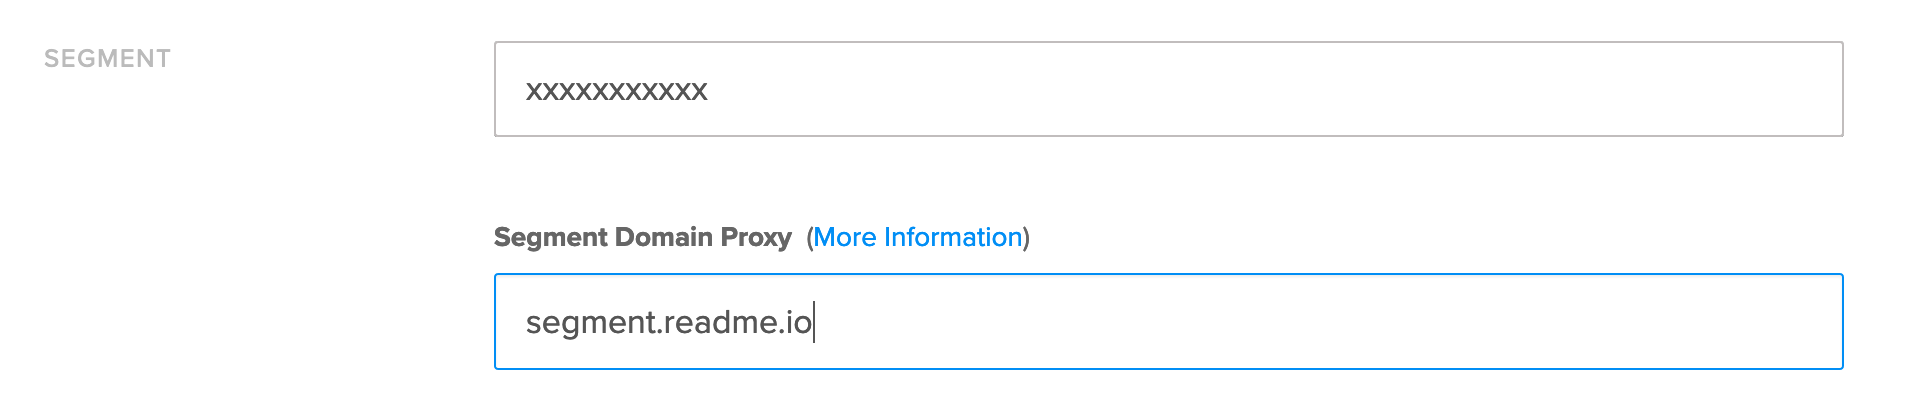 Set your custom domain in the ReadMe Segment configuration on the integrations page.